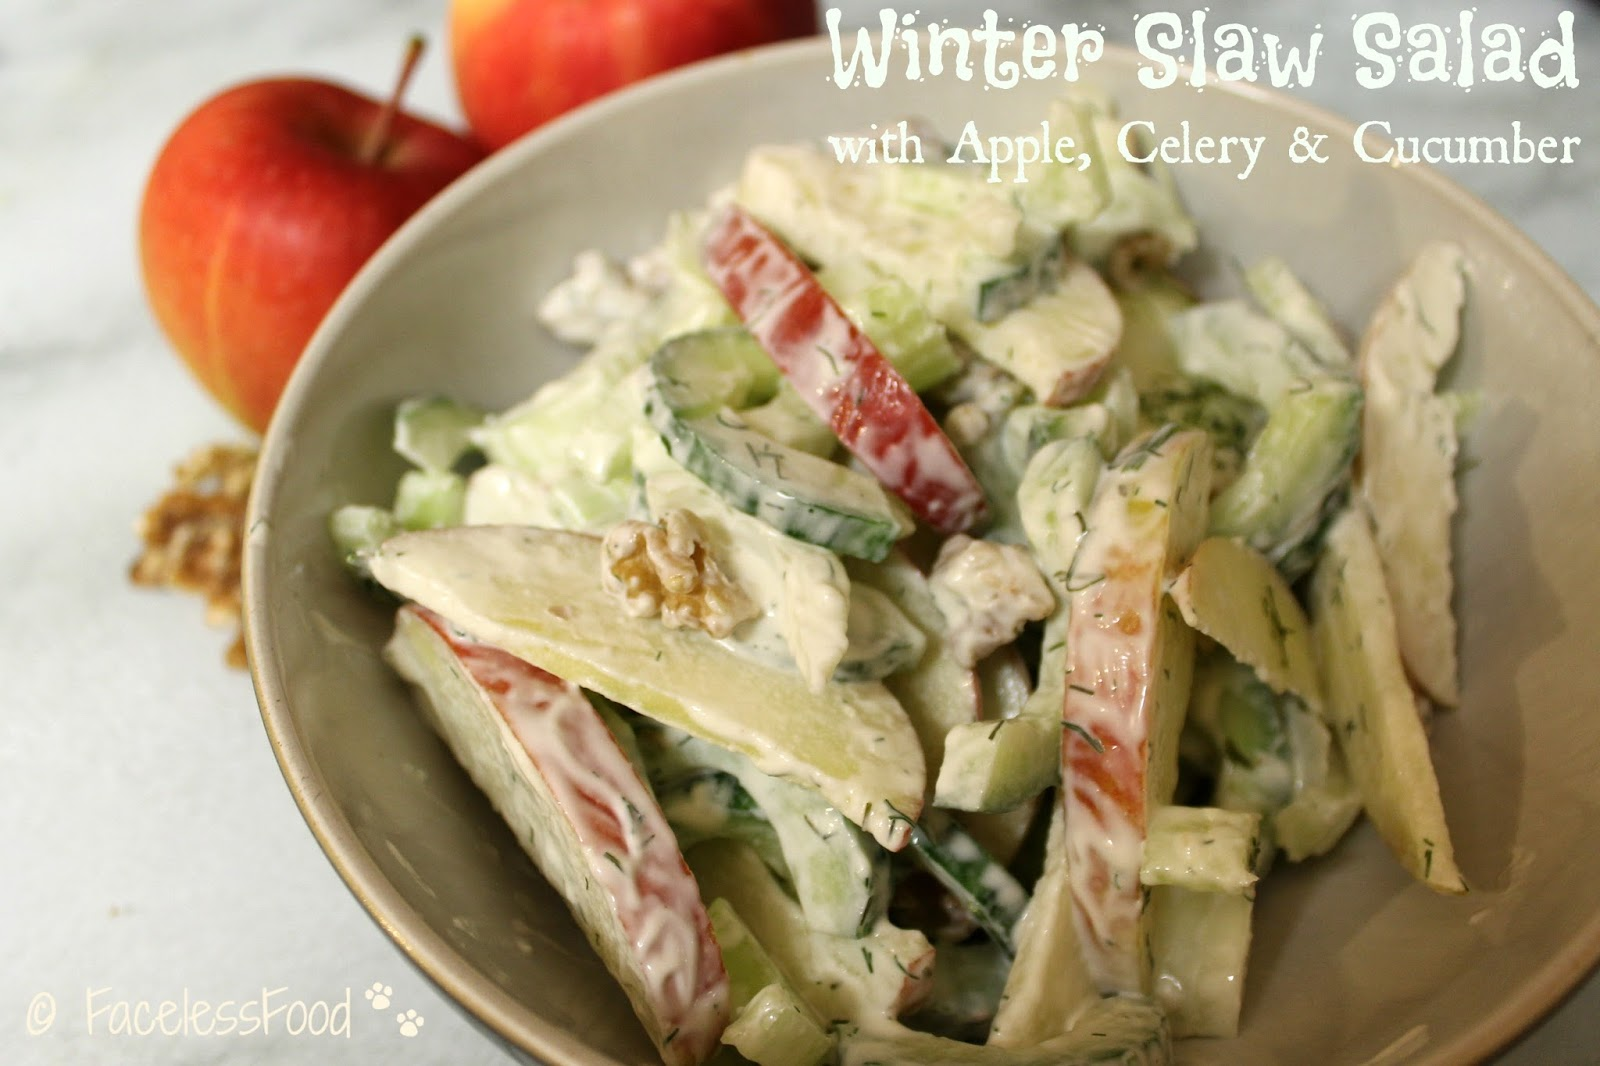 ... Anything With A Face: Winter Slaw Salad with Apple, Celery & Cucumber